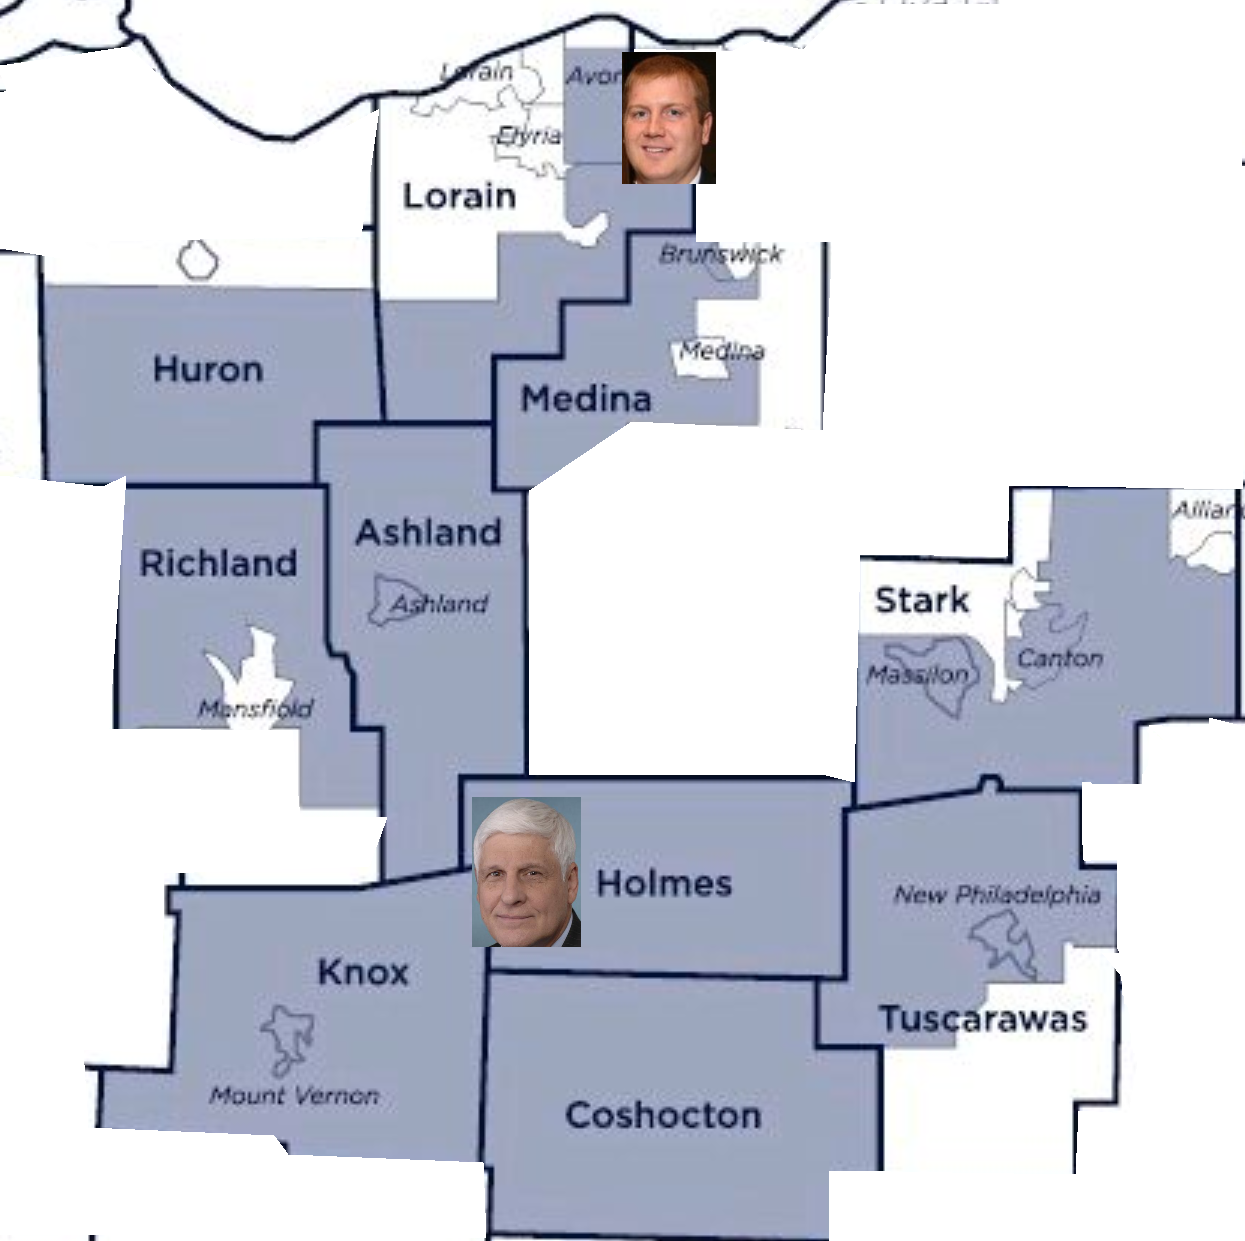 slowly but surely it has been dawning on this blogger that in the candidacy of democrat ken harbaugh the 7th congressional district may have a candidate